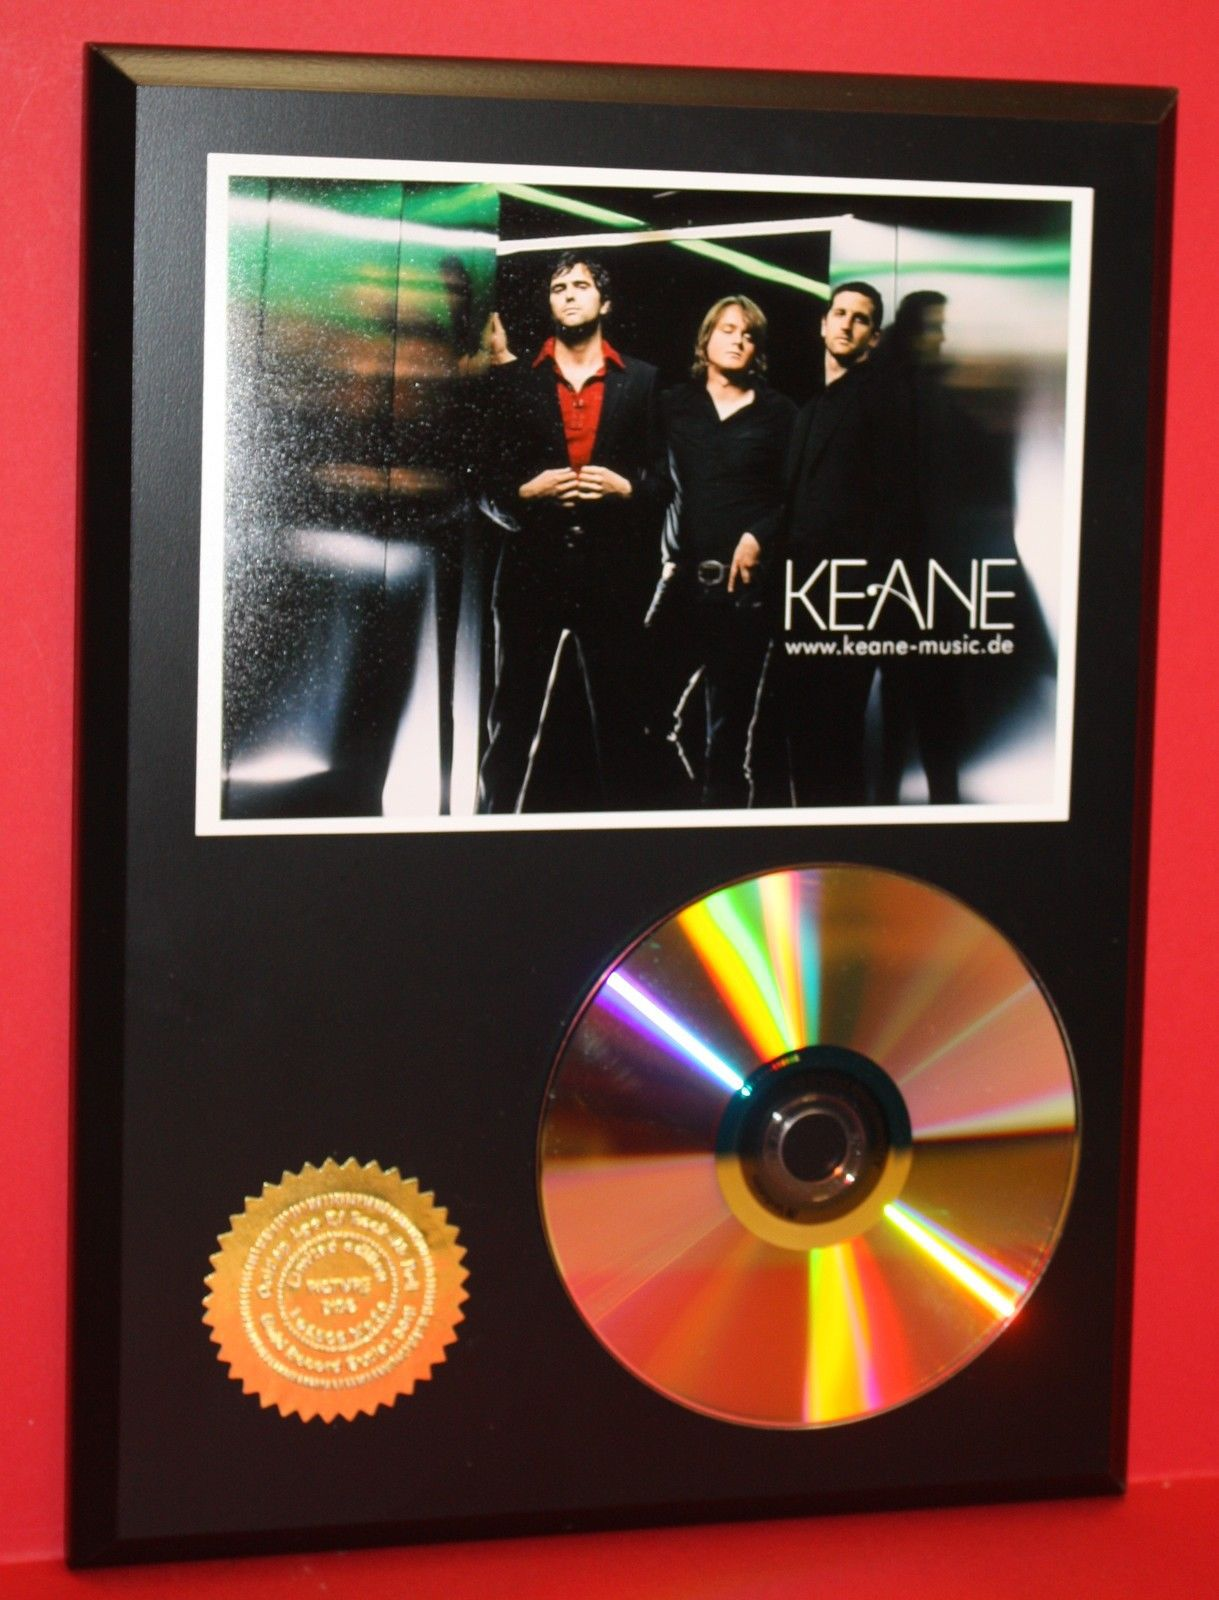 keane alternative 24kt gold cd disc collectible rare award quality plaque other. Black Bedroom Furniture Sets. Home Design Ideas